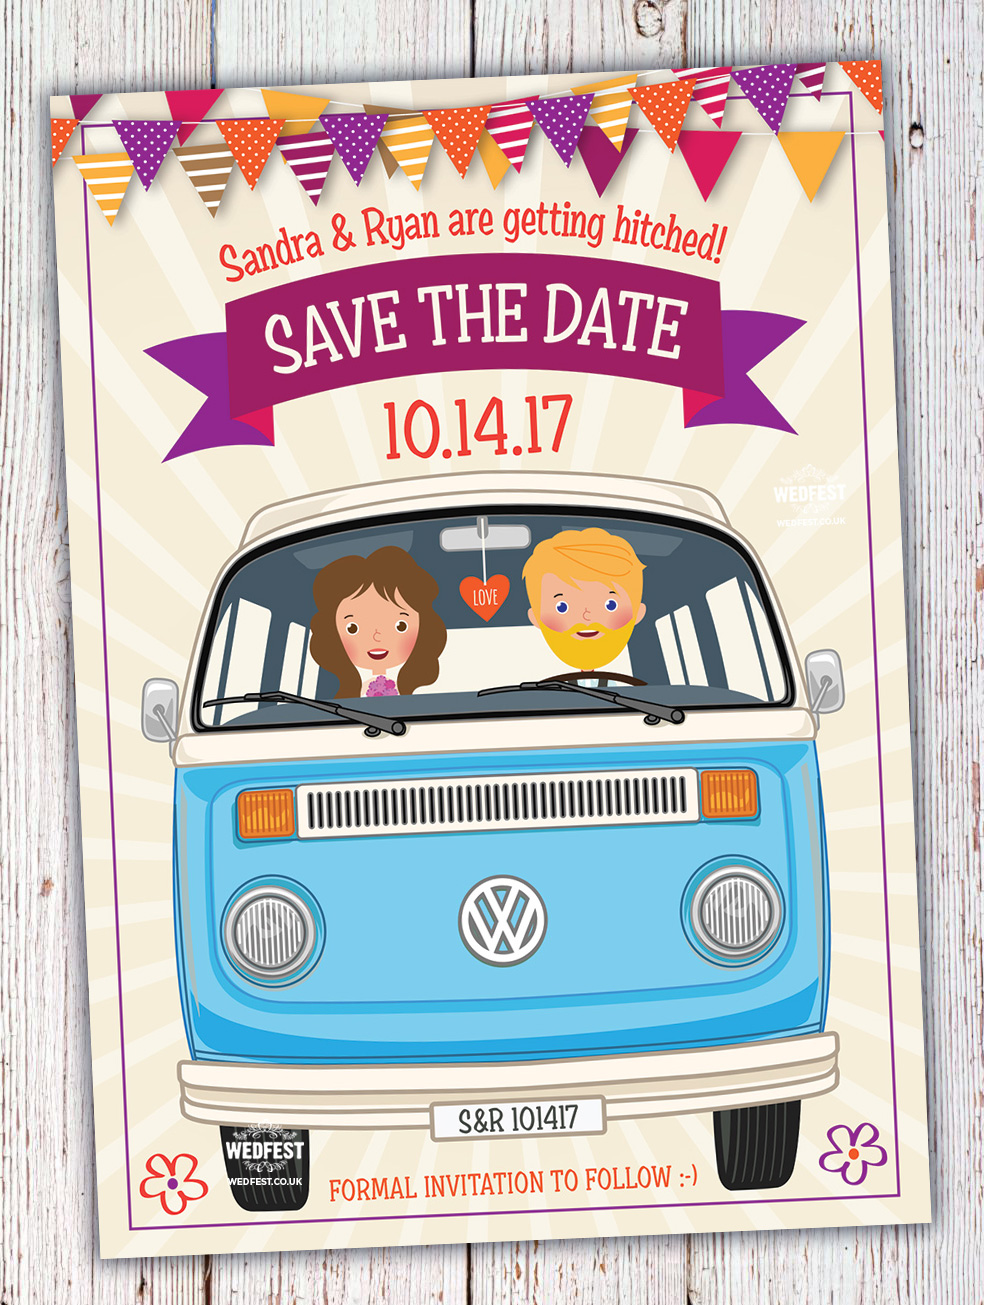 vw camper van festival boho wedding save the dates invites